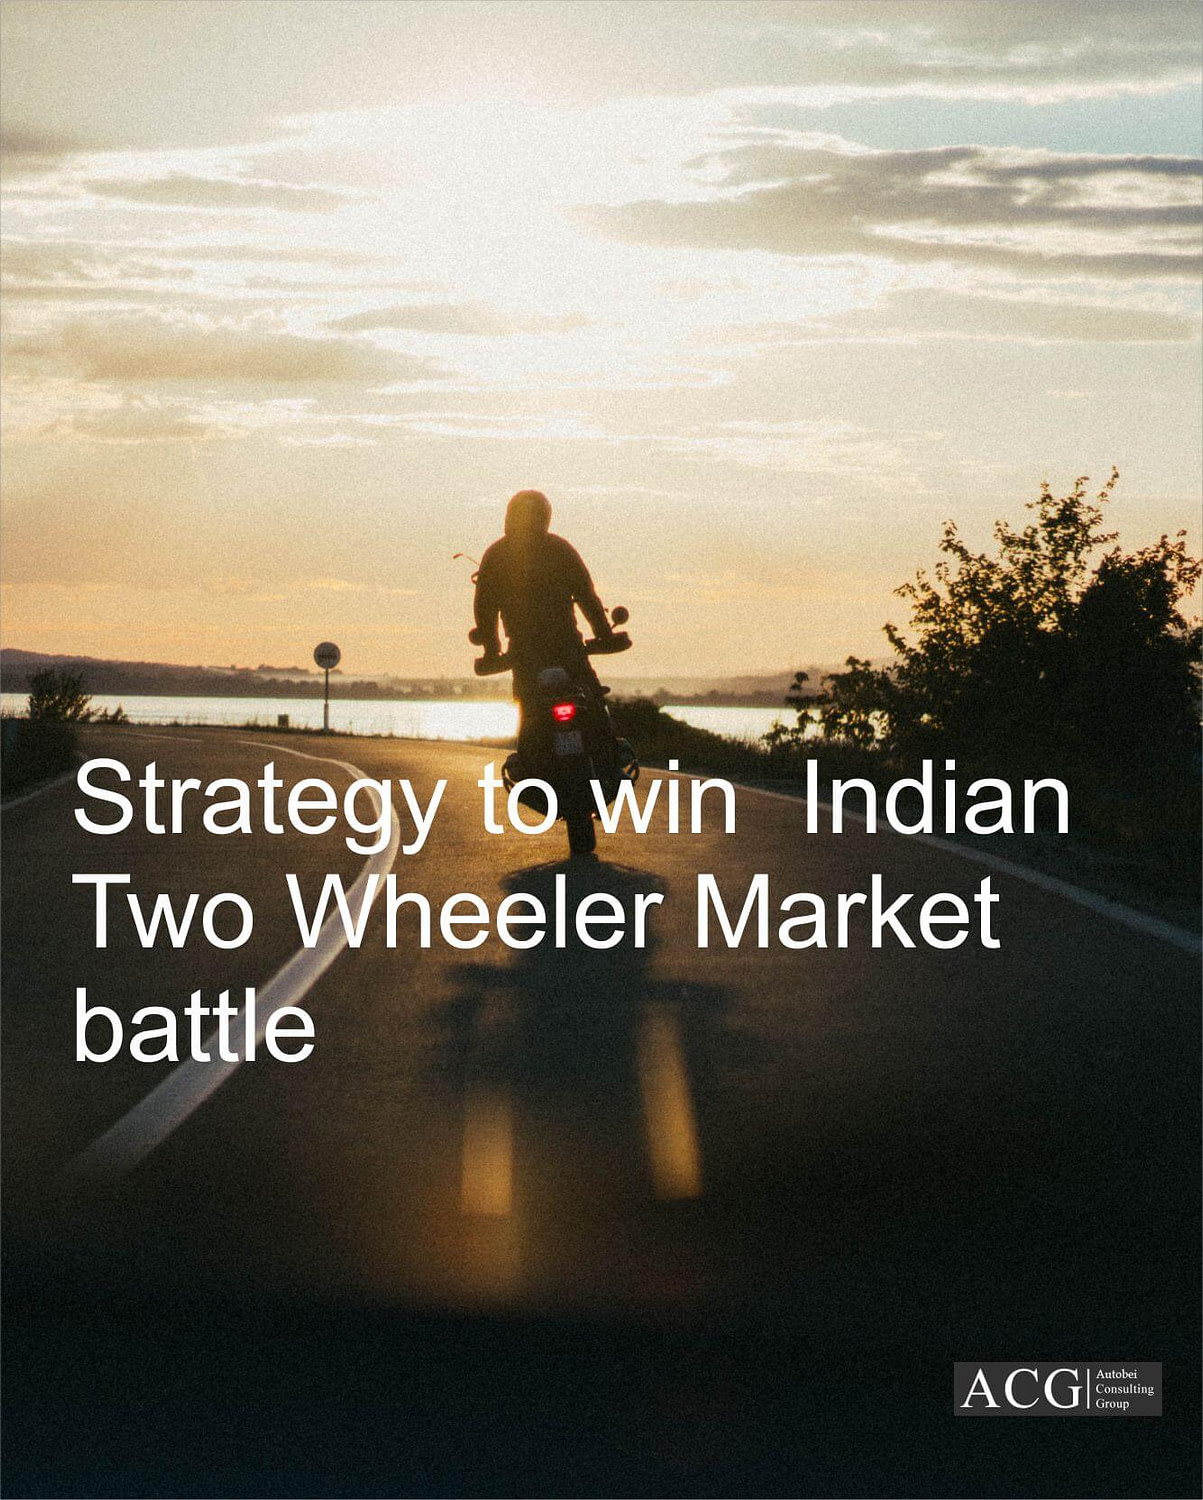 Strategy to win the Indian Two Wheeler Market battle